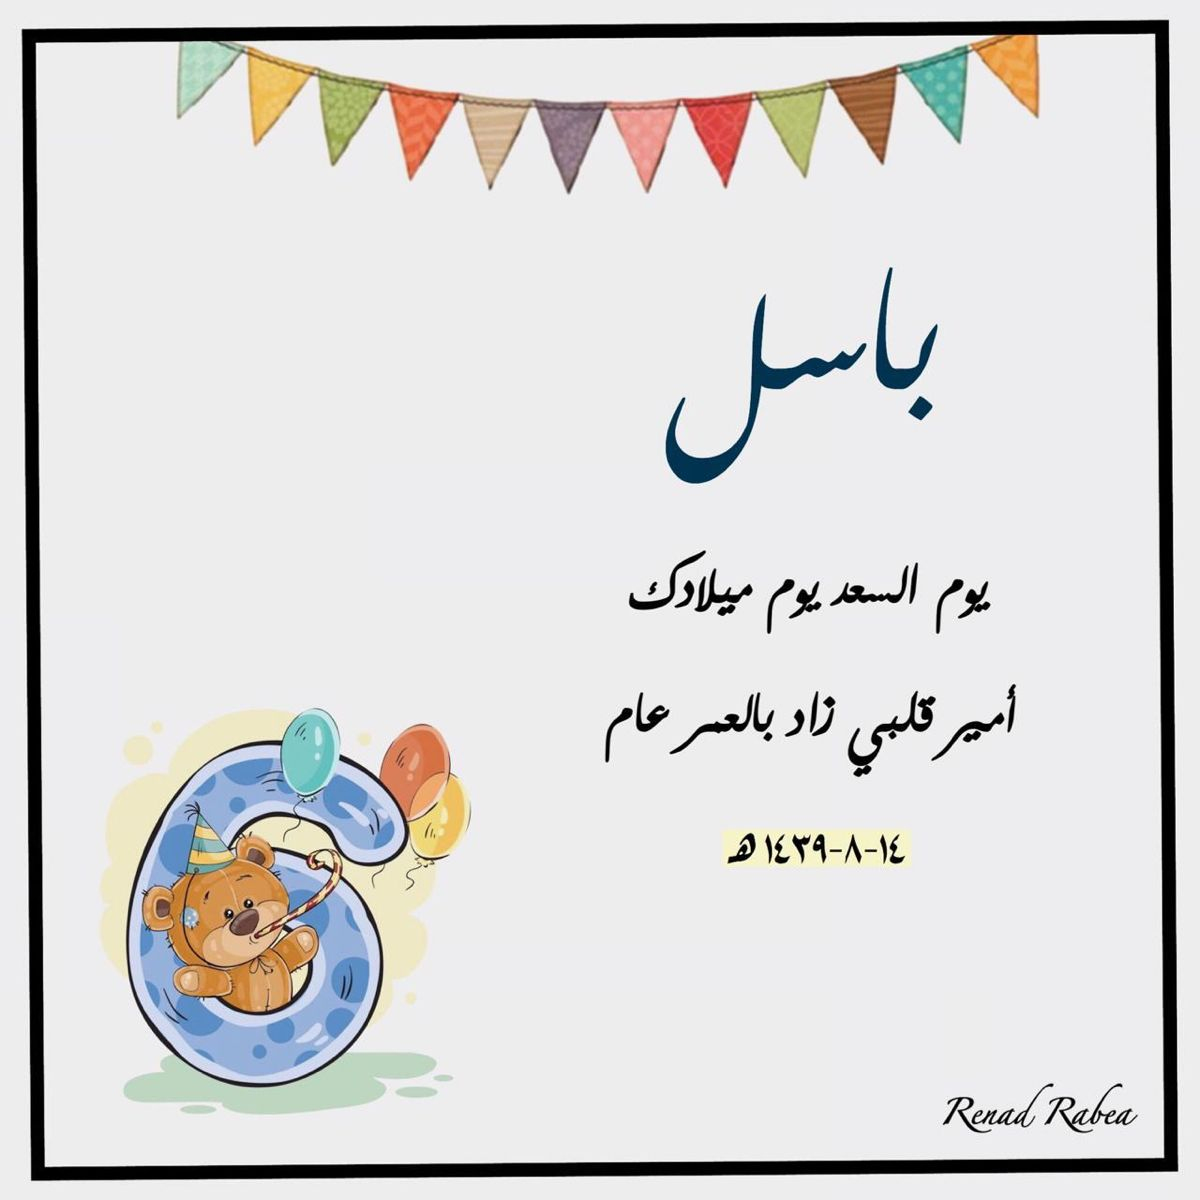 Pin By Renad On العيد In 2020 Arabic Calligraphy Calligraphy